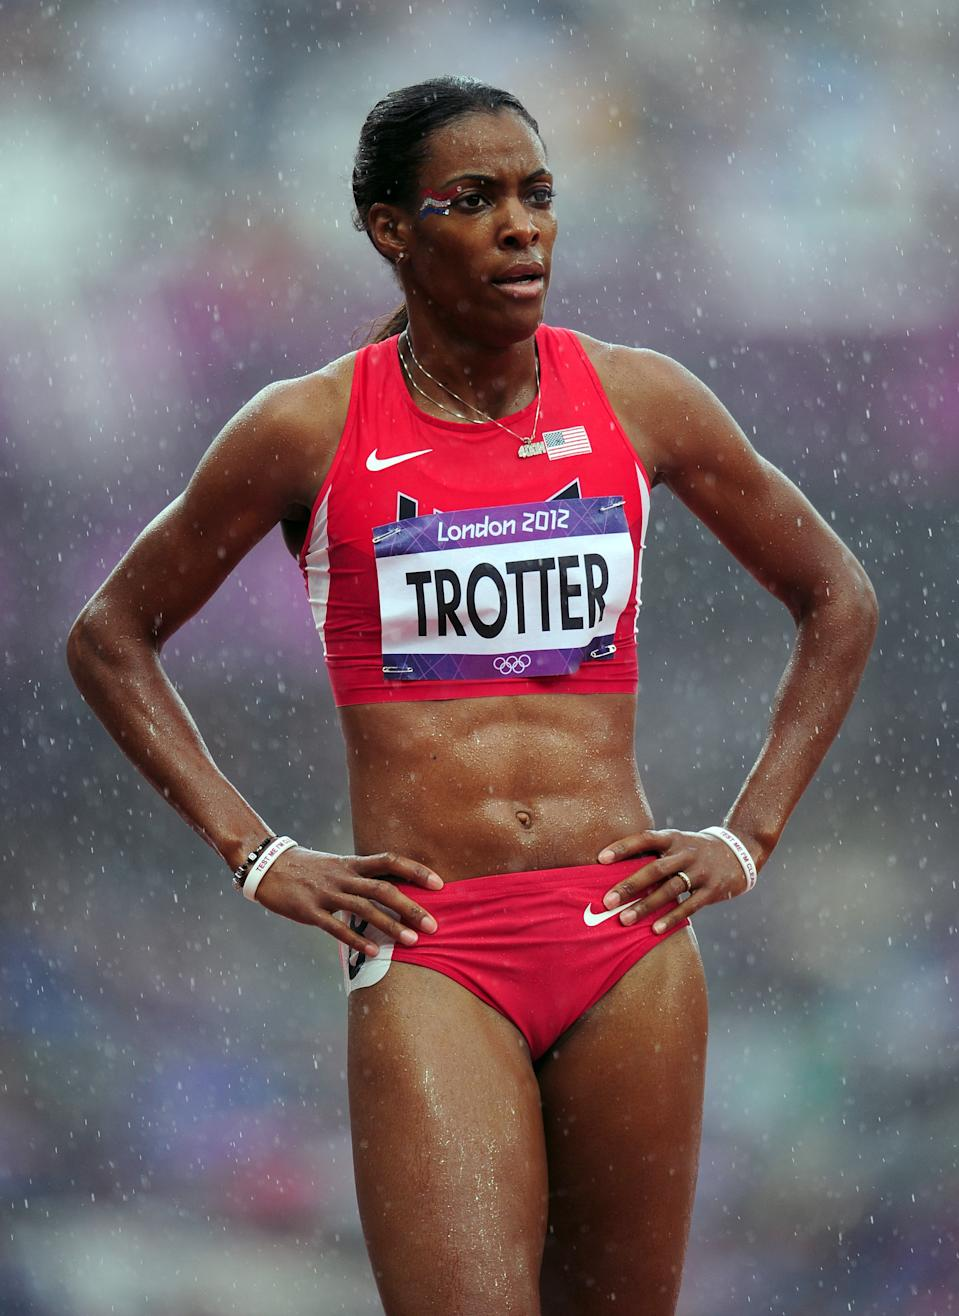 LONDON, ENGLAND - AUGUST 03: Dee Dee Trotter of the United States competes in the Women's 400m Heats on Day 7 of the London 2012 Olympic Games at Olympic Stadium on August 3, 2012 in London, England. (Photo by Stu Forster/Getty Images)